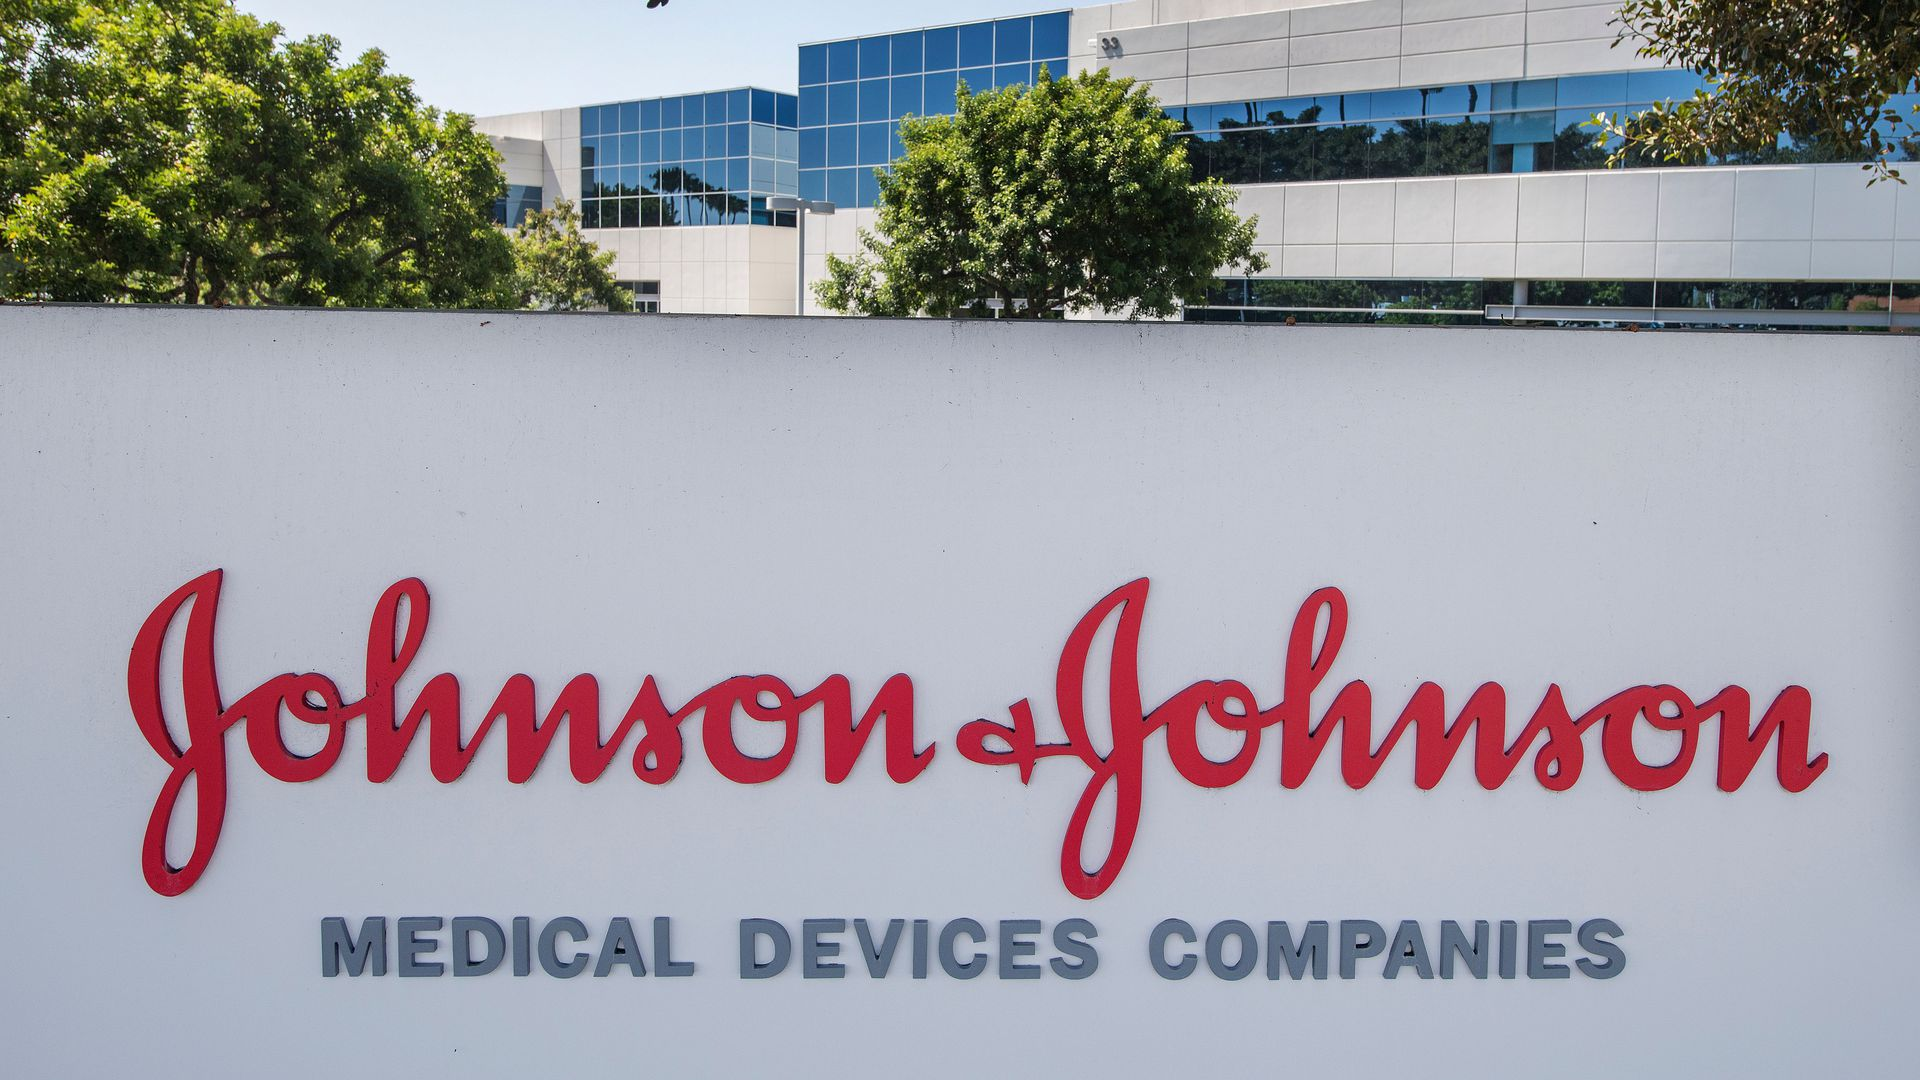 This image shows the Johnson & Johnson logo